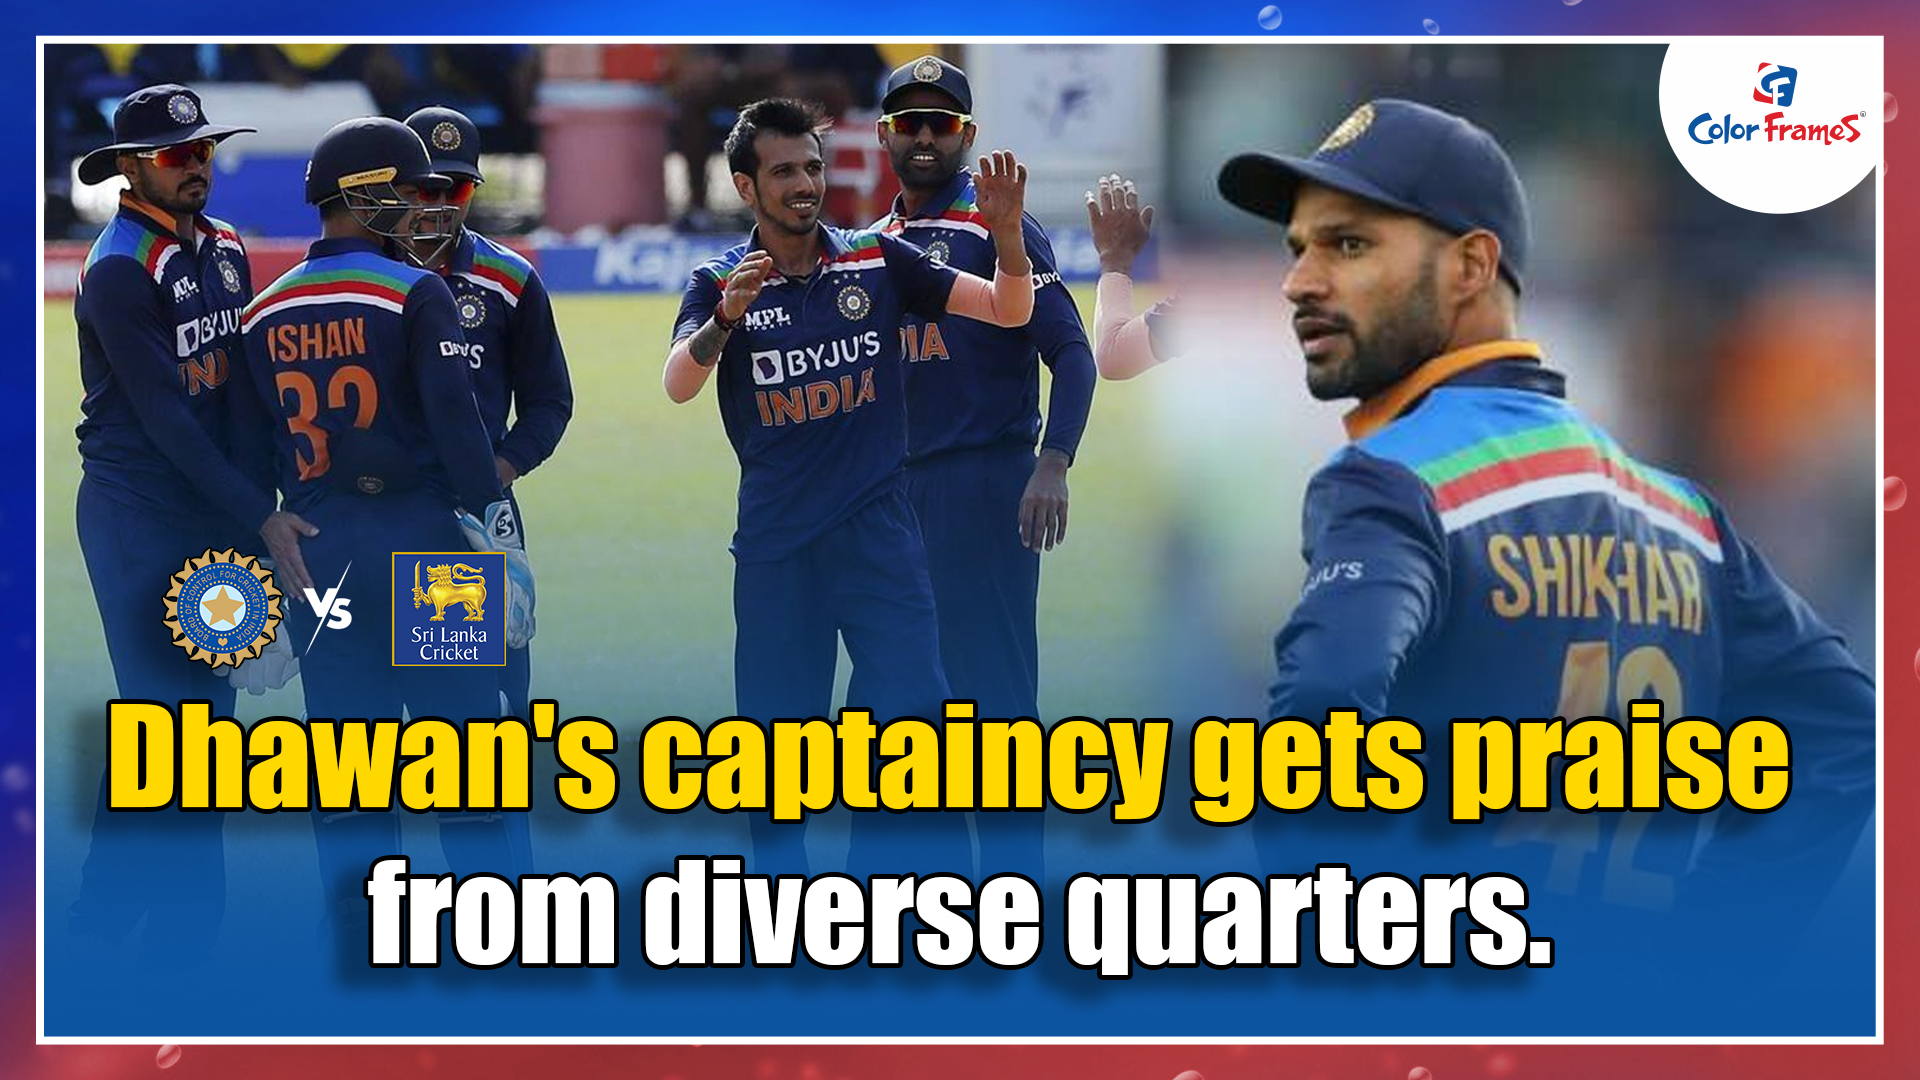 Dhawan's captaincy gets praise from diverse quarters.